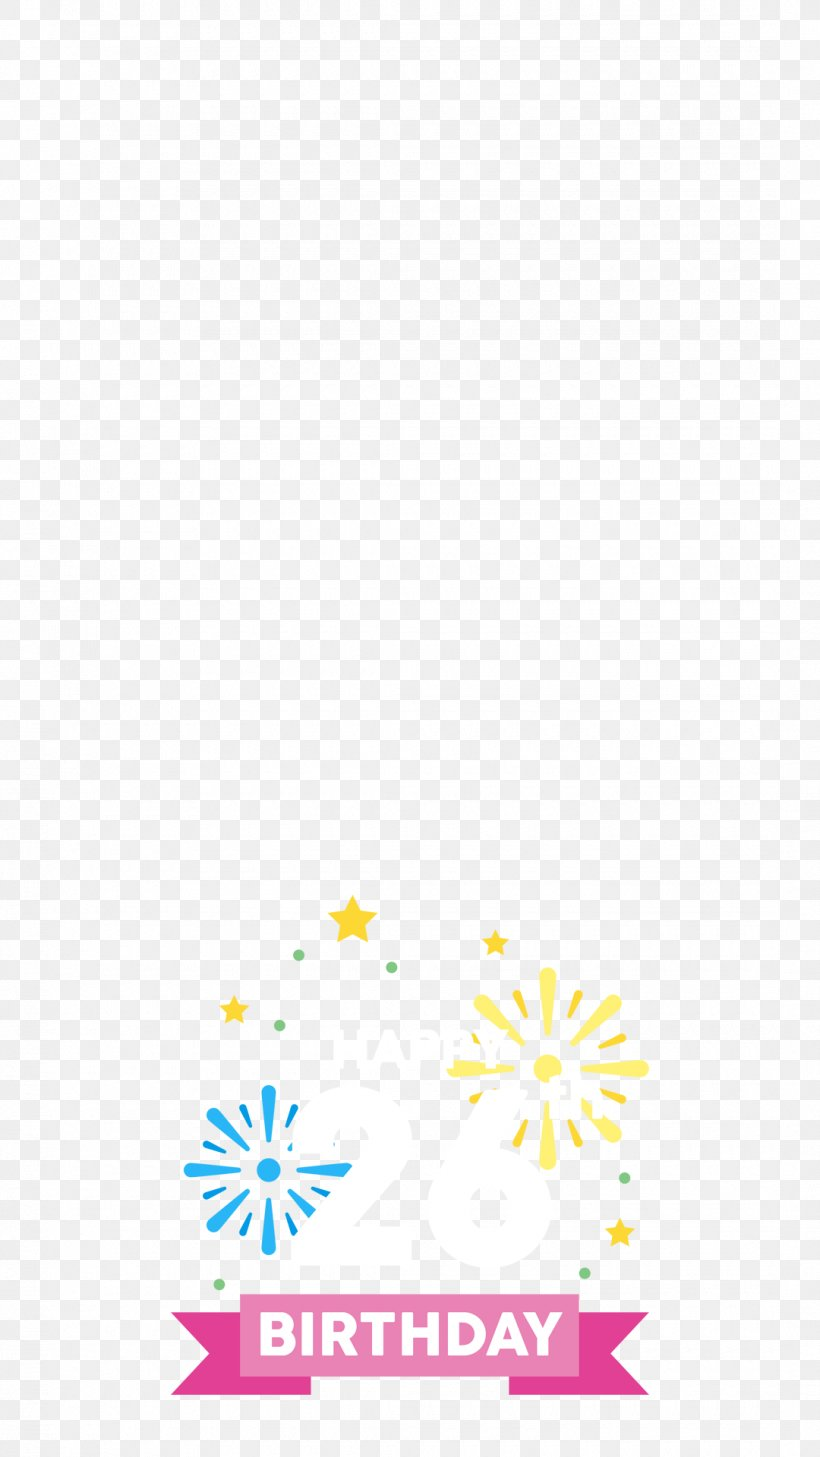 Happy Birthday To You Party Anniversary Filter, PNG, 1080x1920px, Birthday, Anniversary, Area, Blog, Electronic Filter Download Free